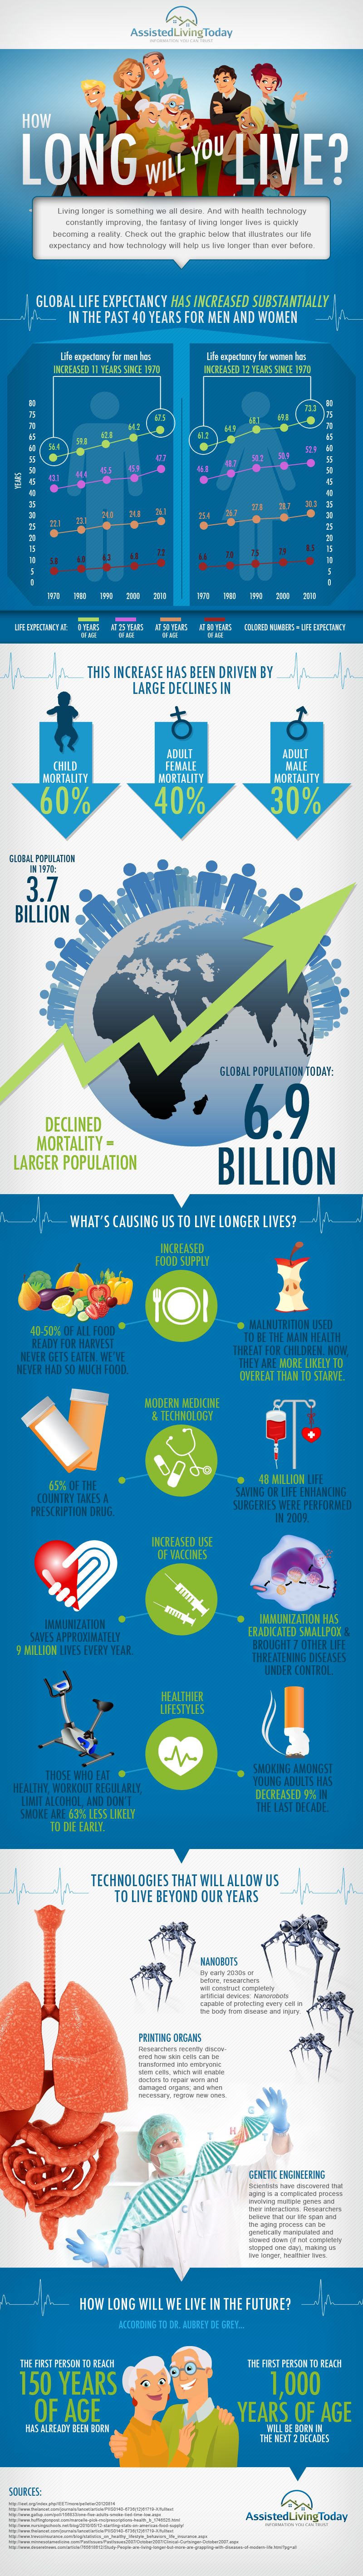 How Long Will I Live? Infographic